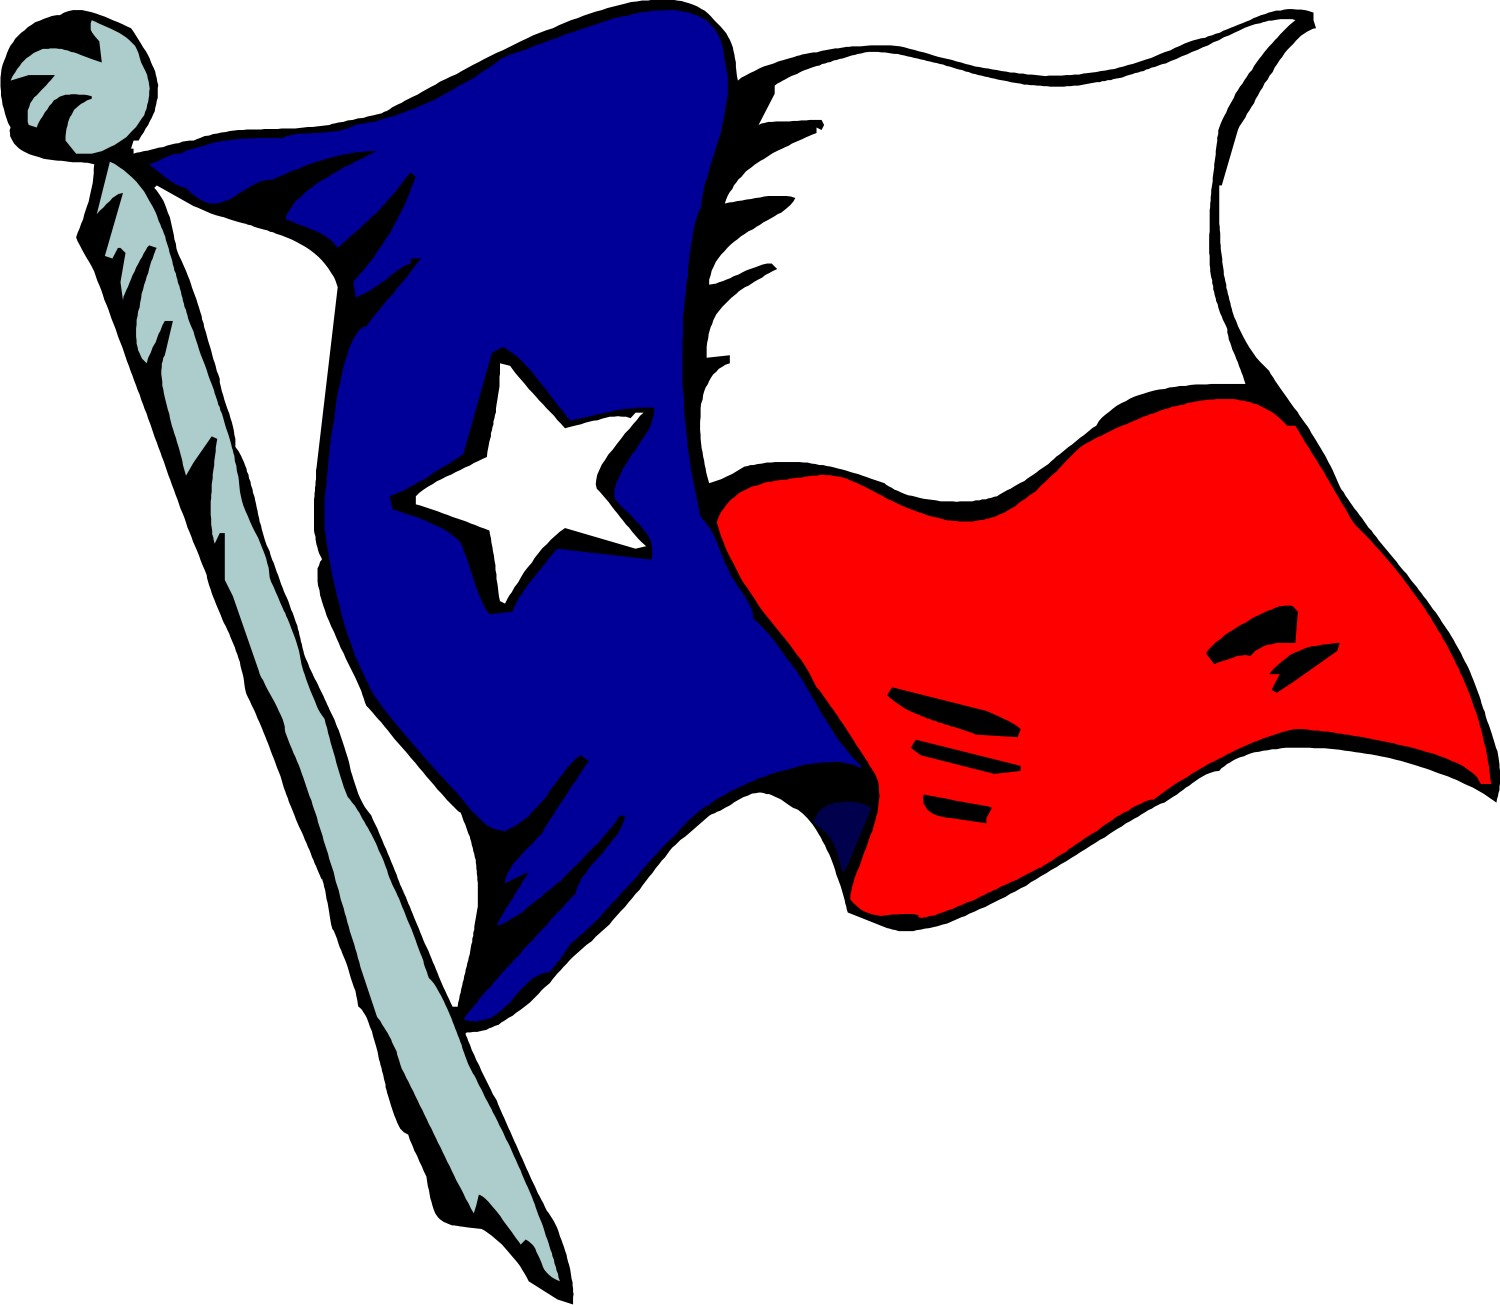 1500x1305 State Of Texas Outline Clip Art Free Vector For Download 3